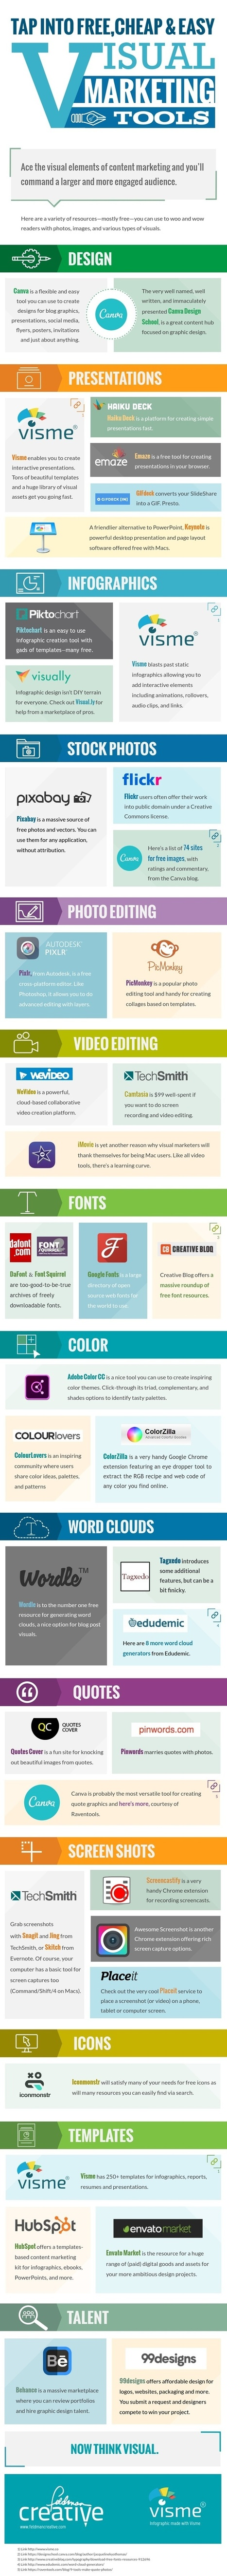 Tap Into Free, Cheap, and Easy Visual Marketing Tools [Infographic] | Integrated Brand Communications | Scoop.it